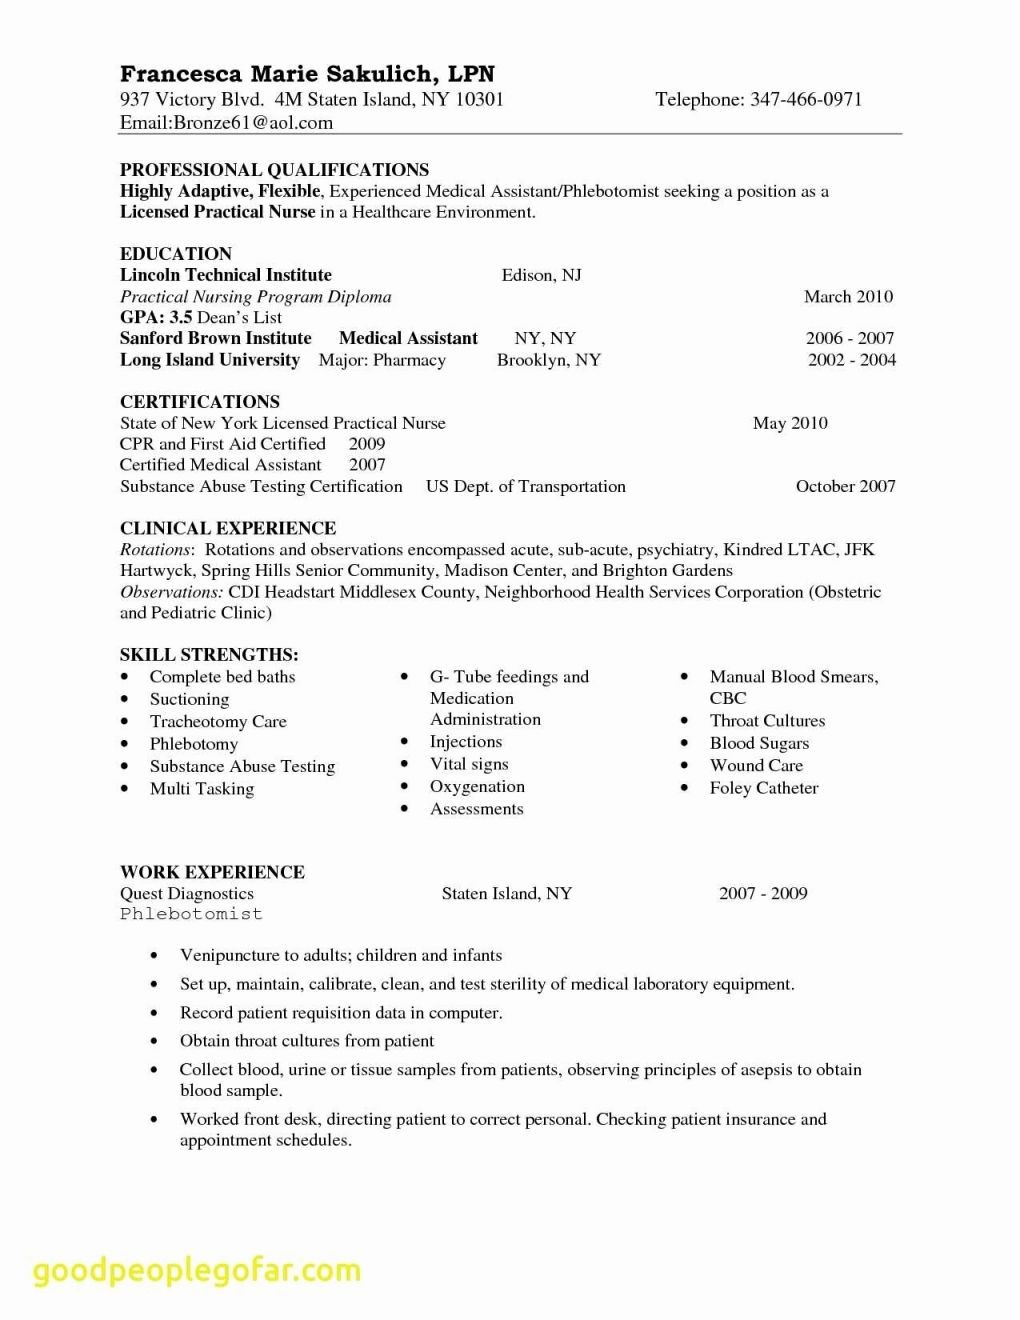 Healthcare Administration Resume - Healthcare Databases